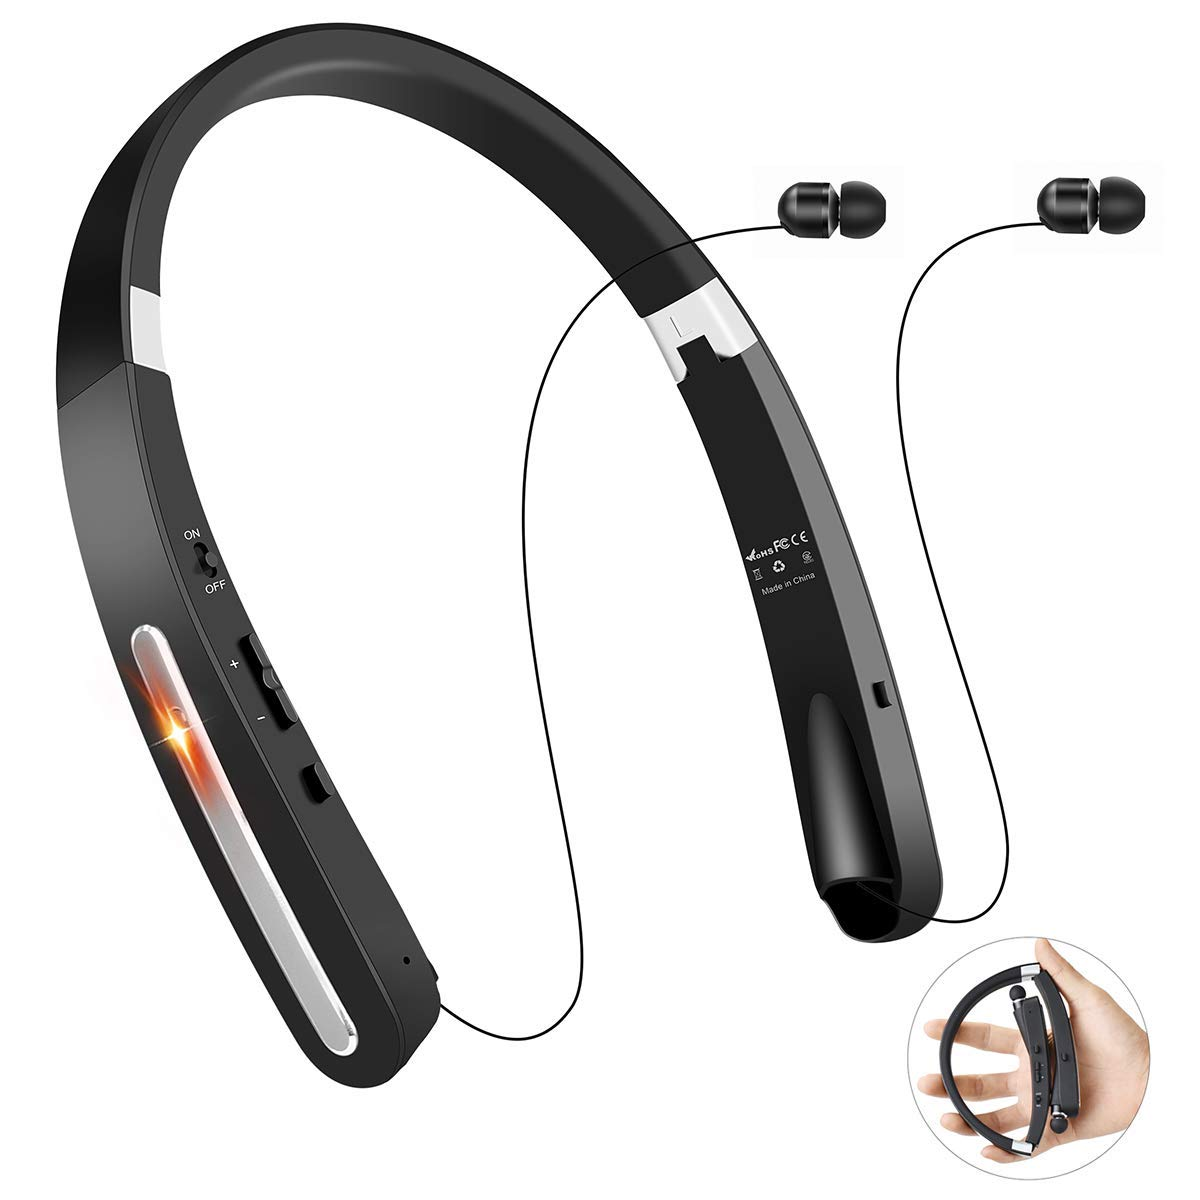 Best Cheap Bluetooth Headphones 2020 Under 30 50 Budgetreport